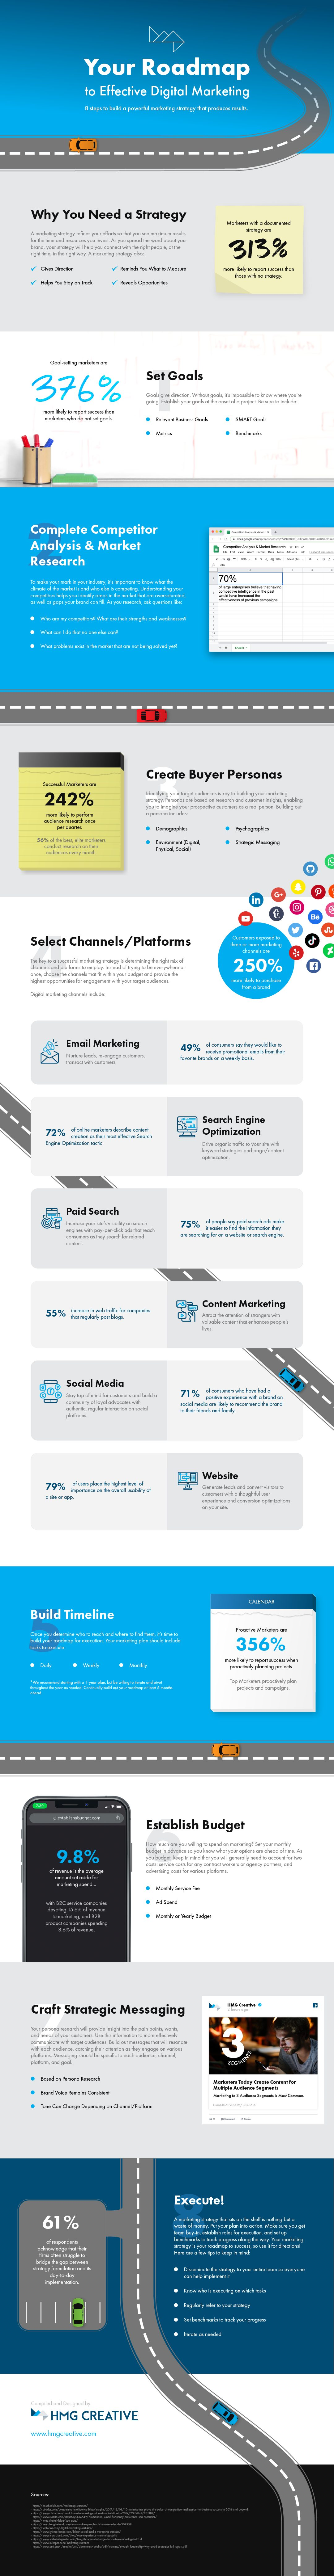 Your Roadmap to Effective Digital Marketing